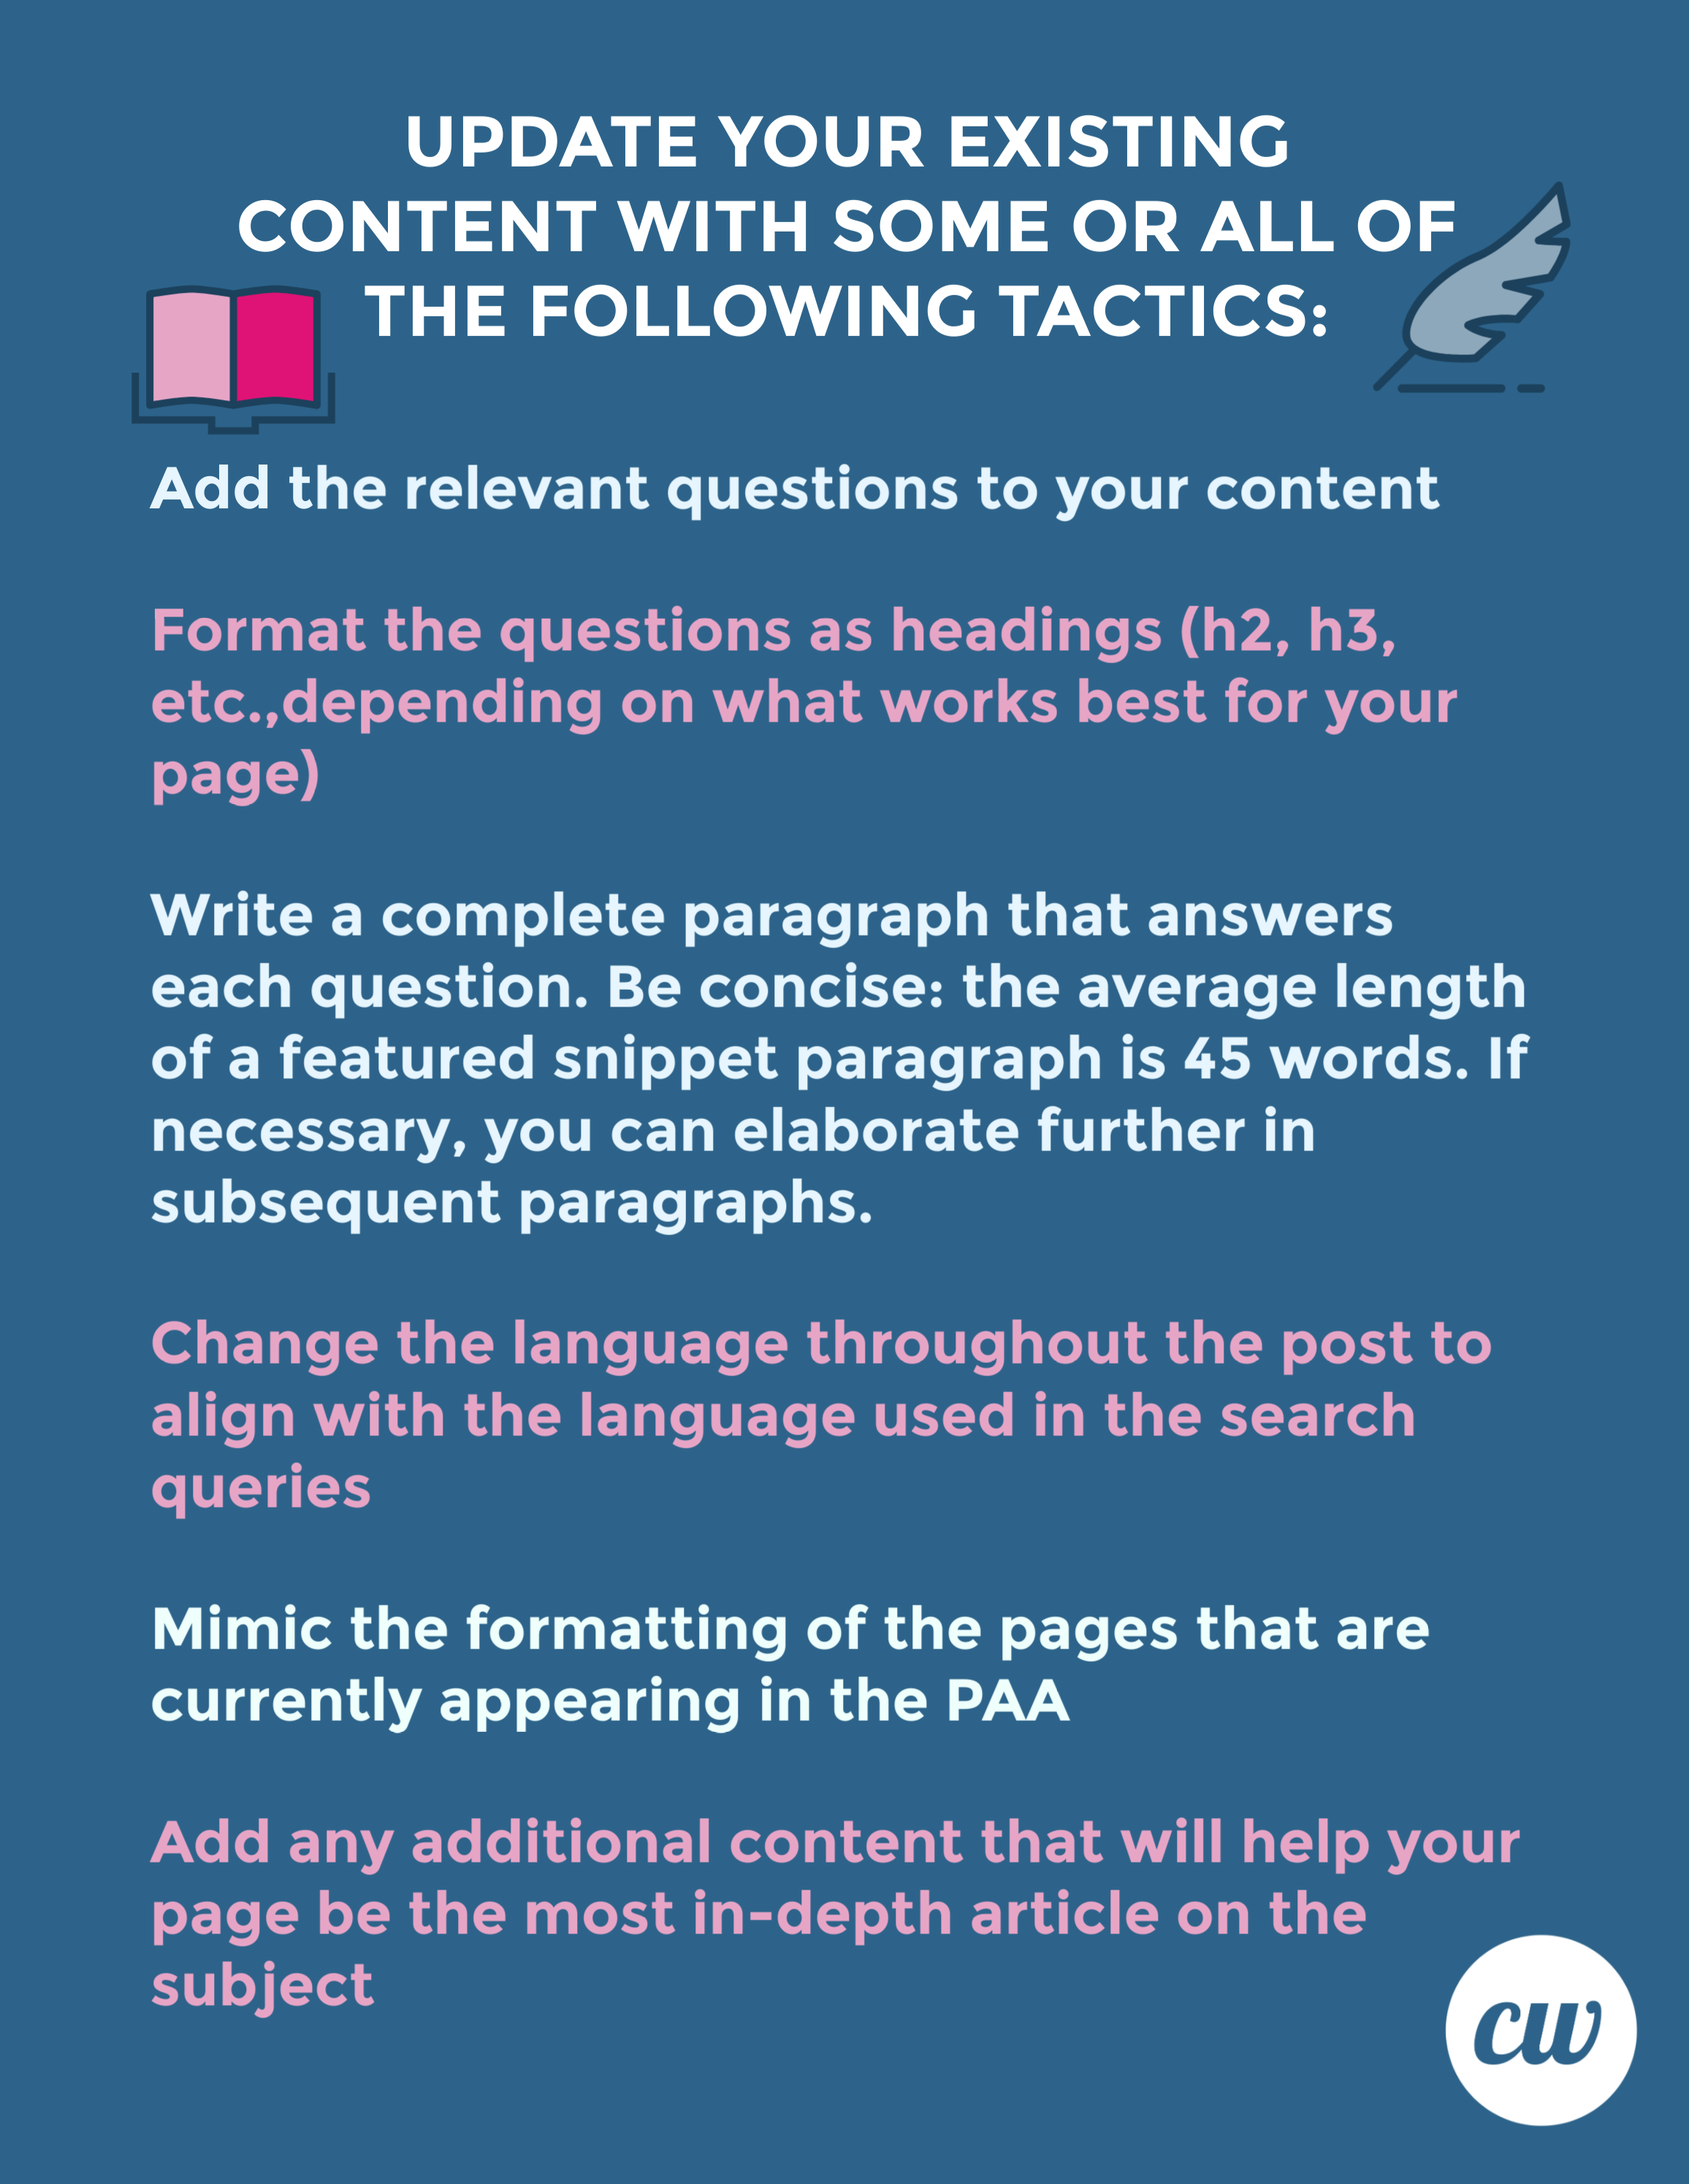 Update your existing content with some or all of the following tactics:  Add the relevant questions to your content.  Format the questions as heading (h2, h3, etc., depending on what works best for your page)  Write a complete paragraph that answers each question. Be concise: the average length of a featured snippet paragraph is 45 words. If necessary, you can elaborate further in subsequent paragraphs.  Change the language throughout the post to align with the language used in the search queries.  Mimic the formatting of the pages that are currently appearing in the PAA.  Add any additional content that will help your page be the most in-depth article on the subject!  ContentWriters